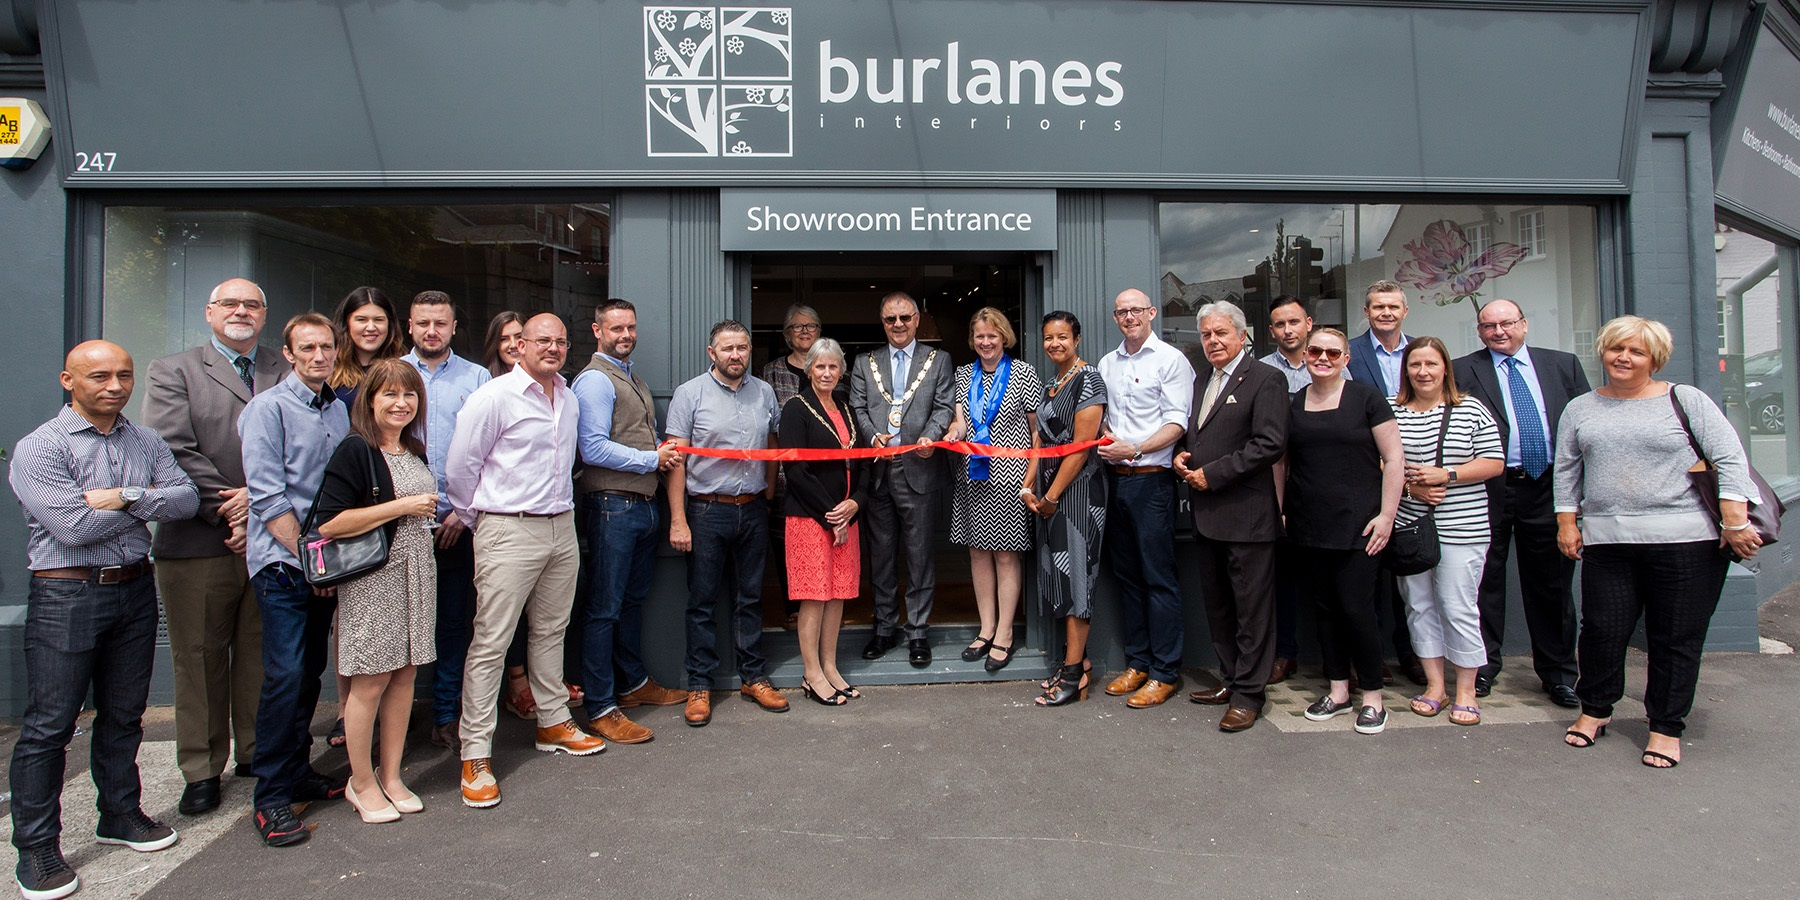 Burlanes Chelmsford - New interior showroom in Chelmsford showcasing handmade furniture of the highest quality